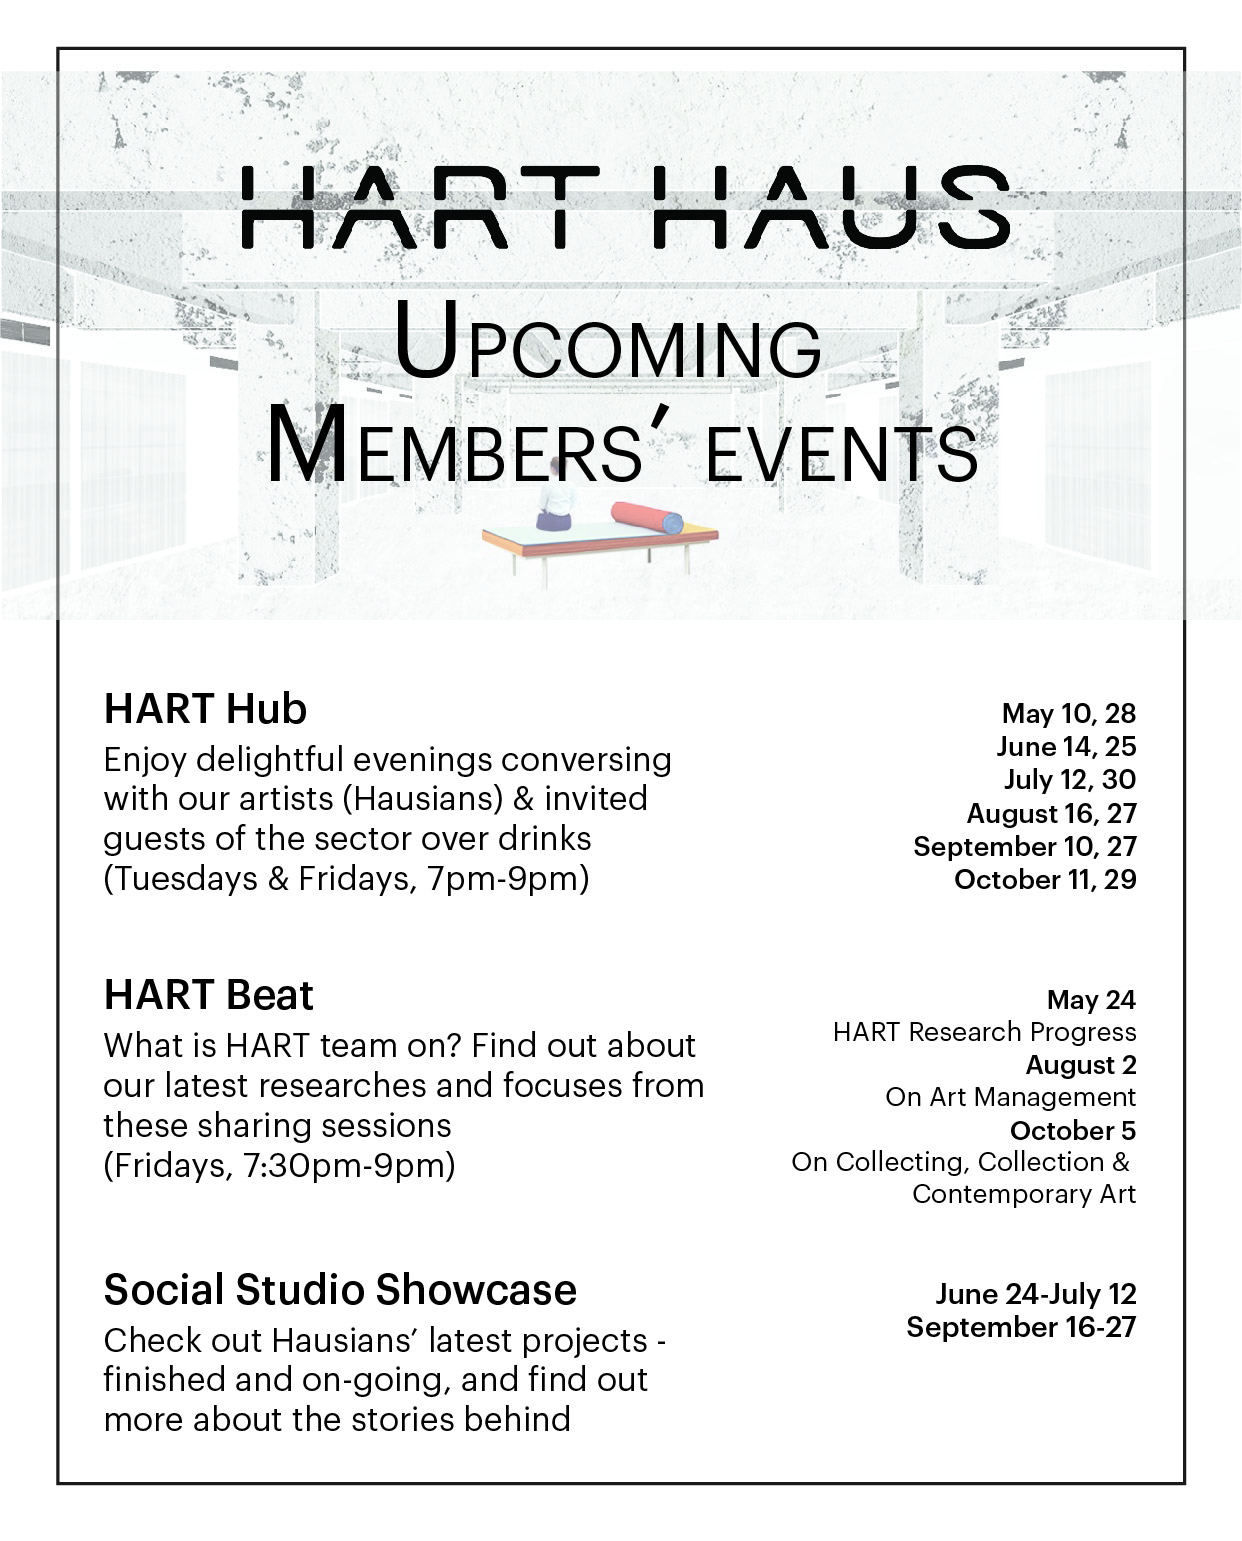 HART Members Events-01.jpg